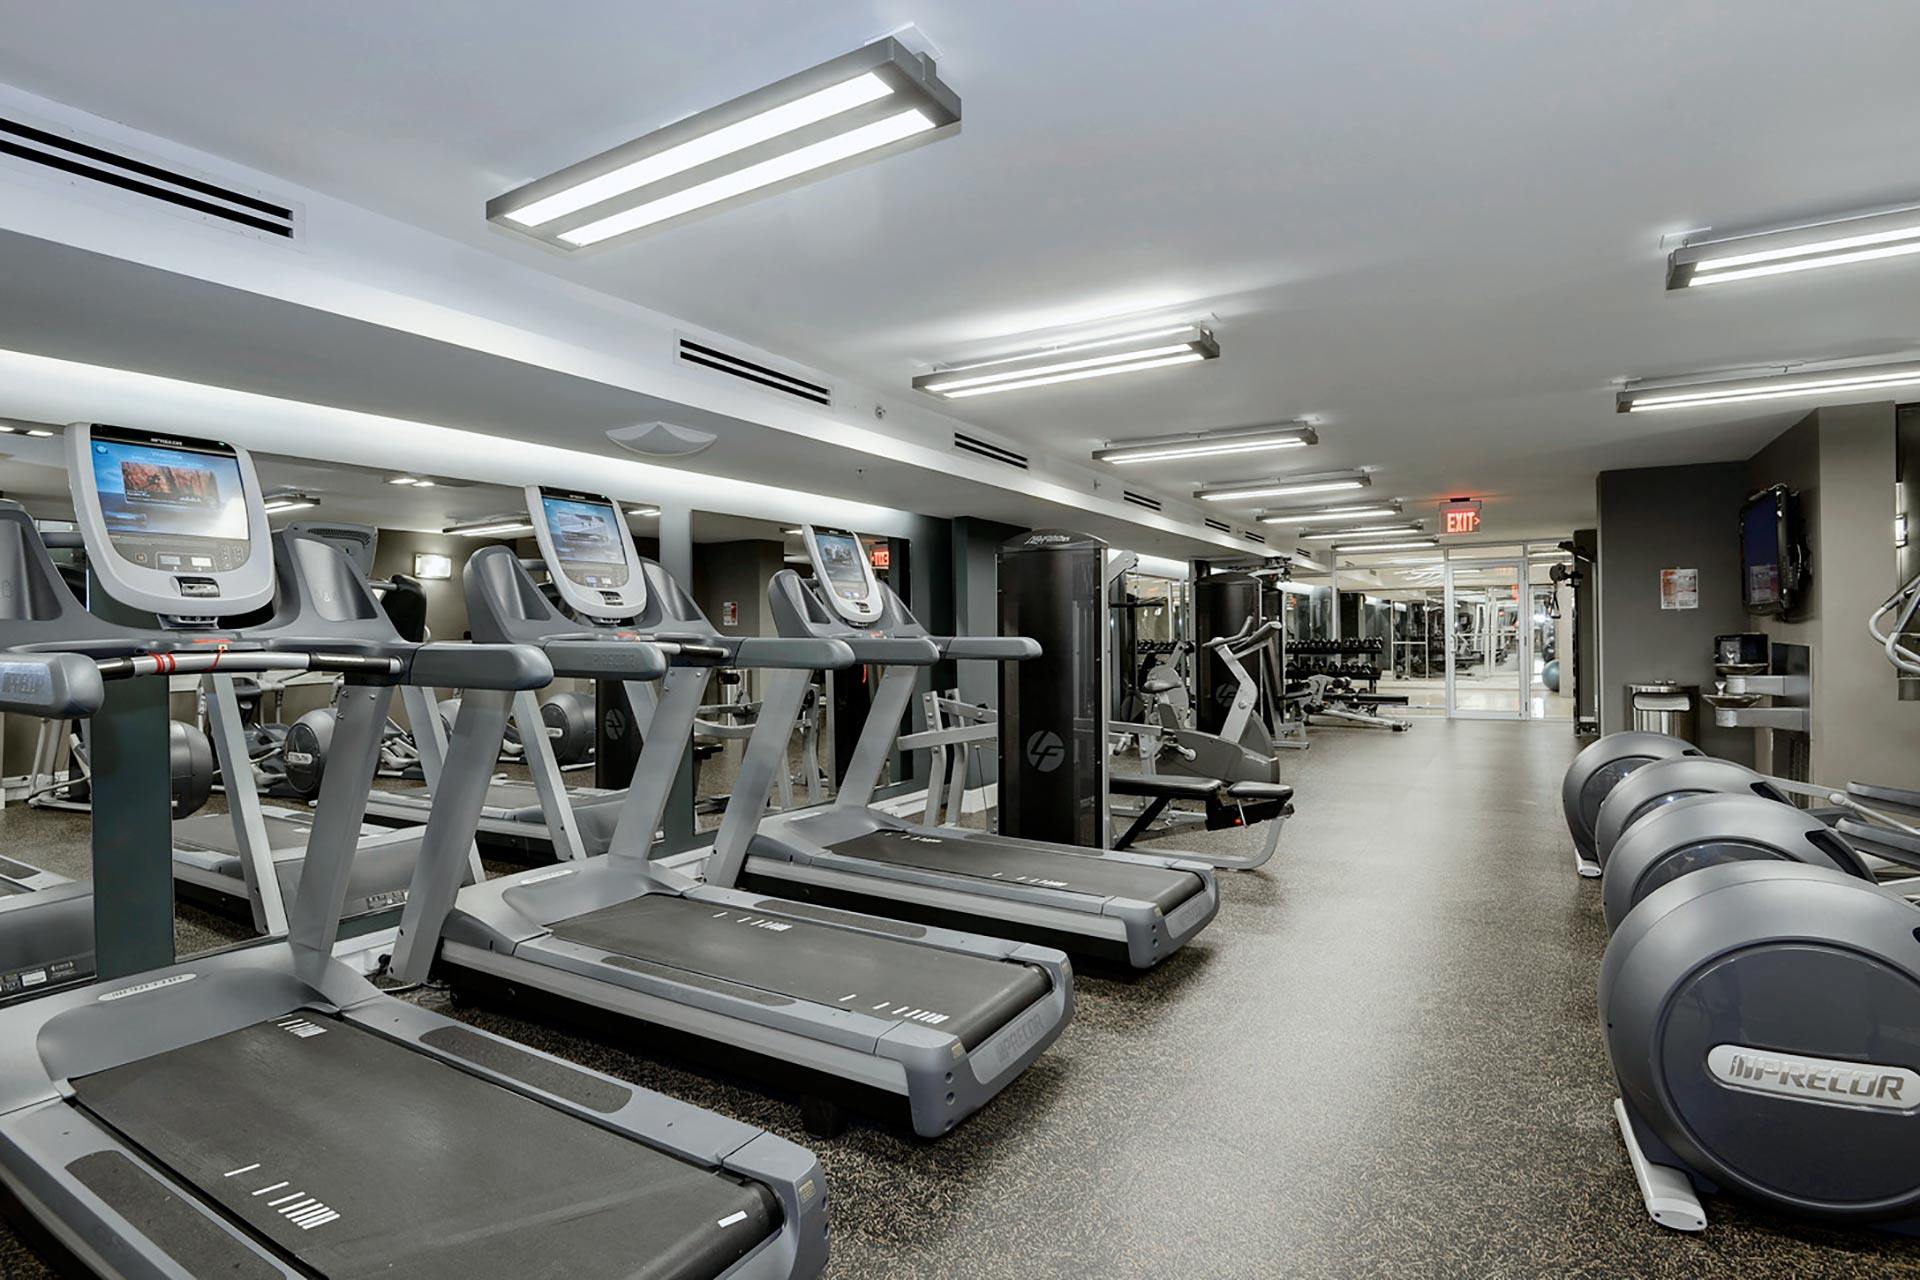 Large fitness room with impact absorbent flooring and cardio equipment along the left, mirrored wall